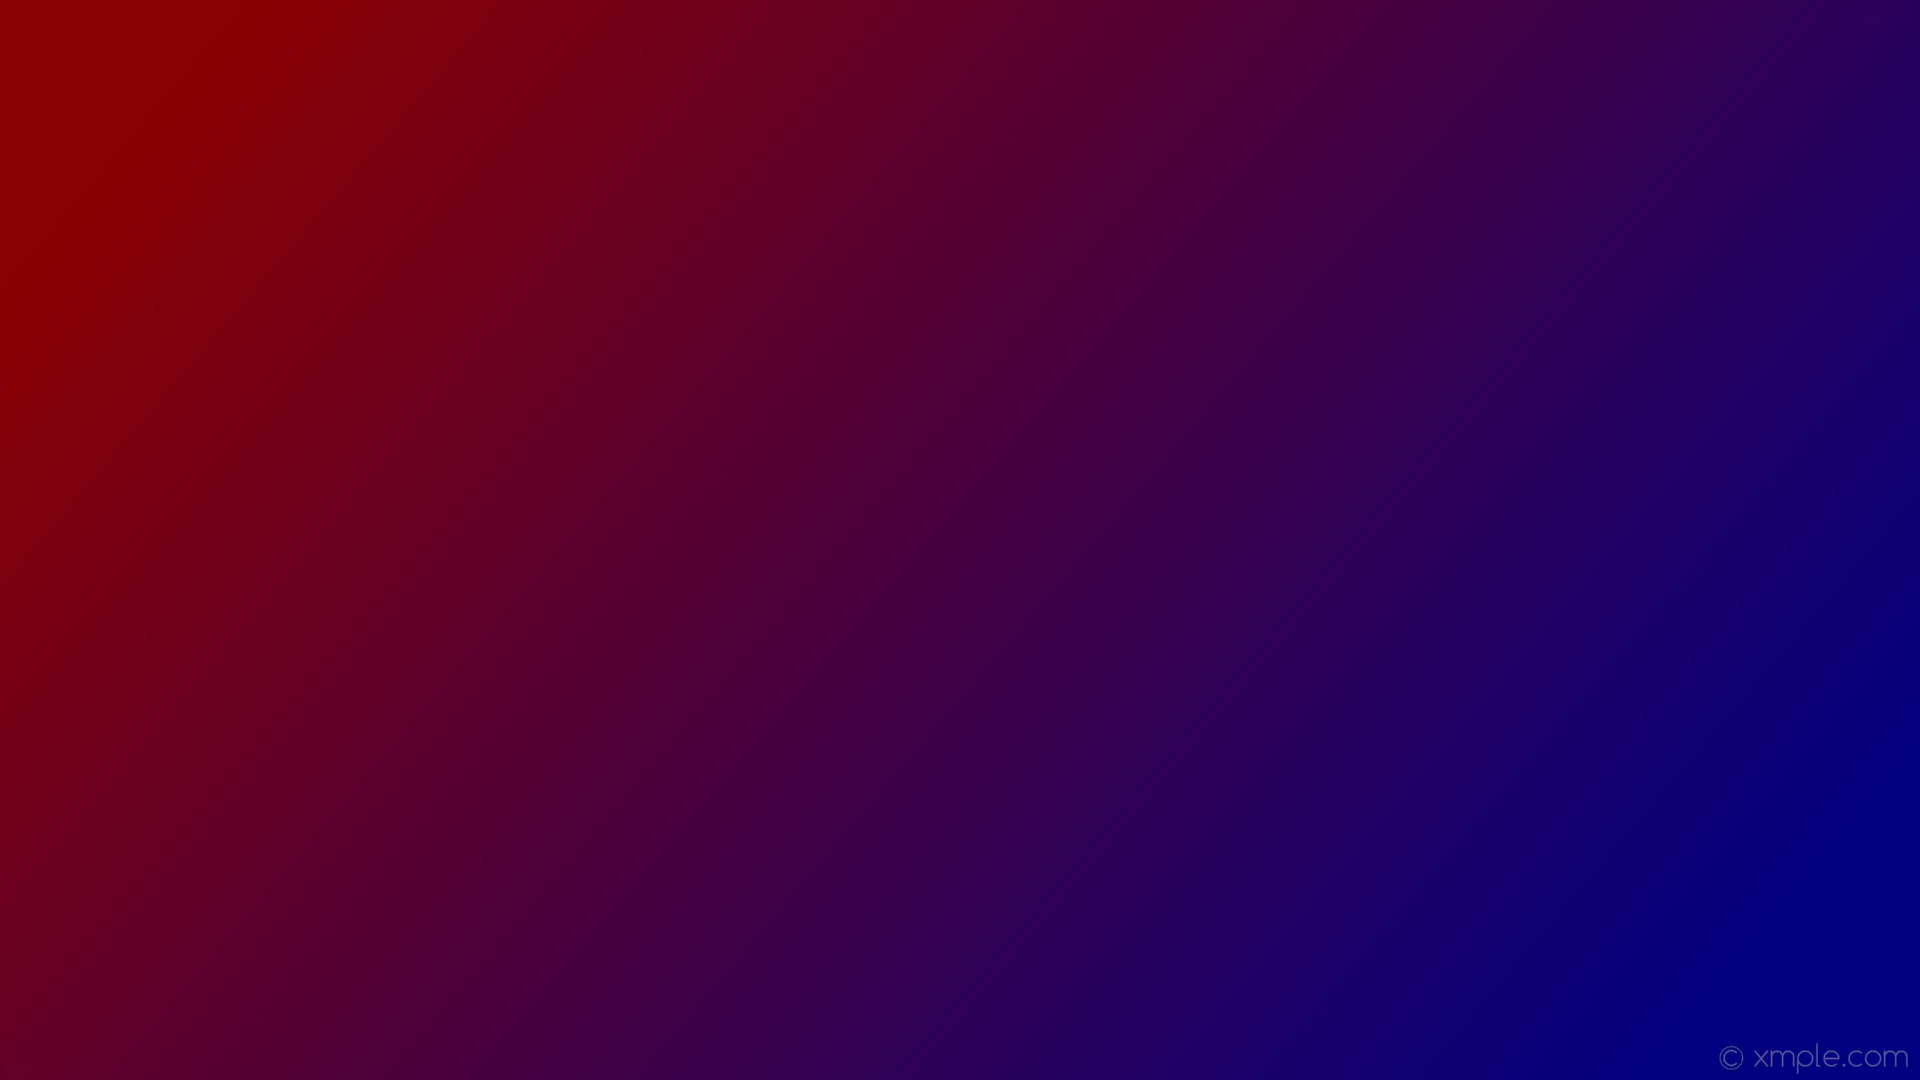 Blue and Red Wallpaper (73+ images)